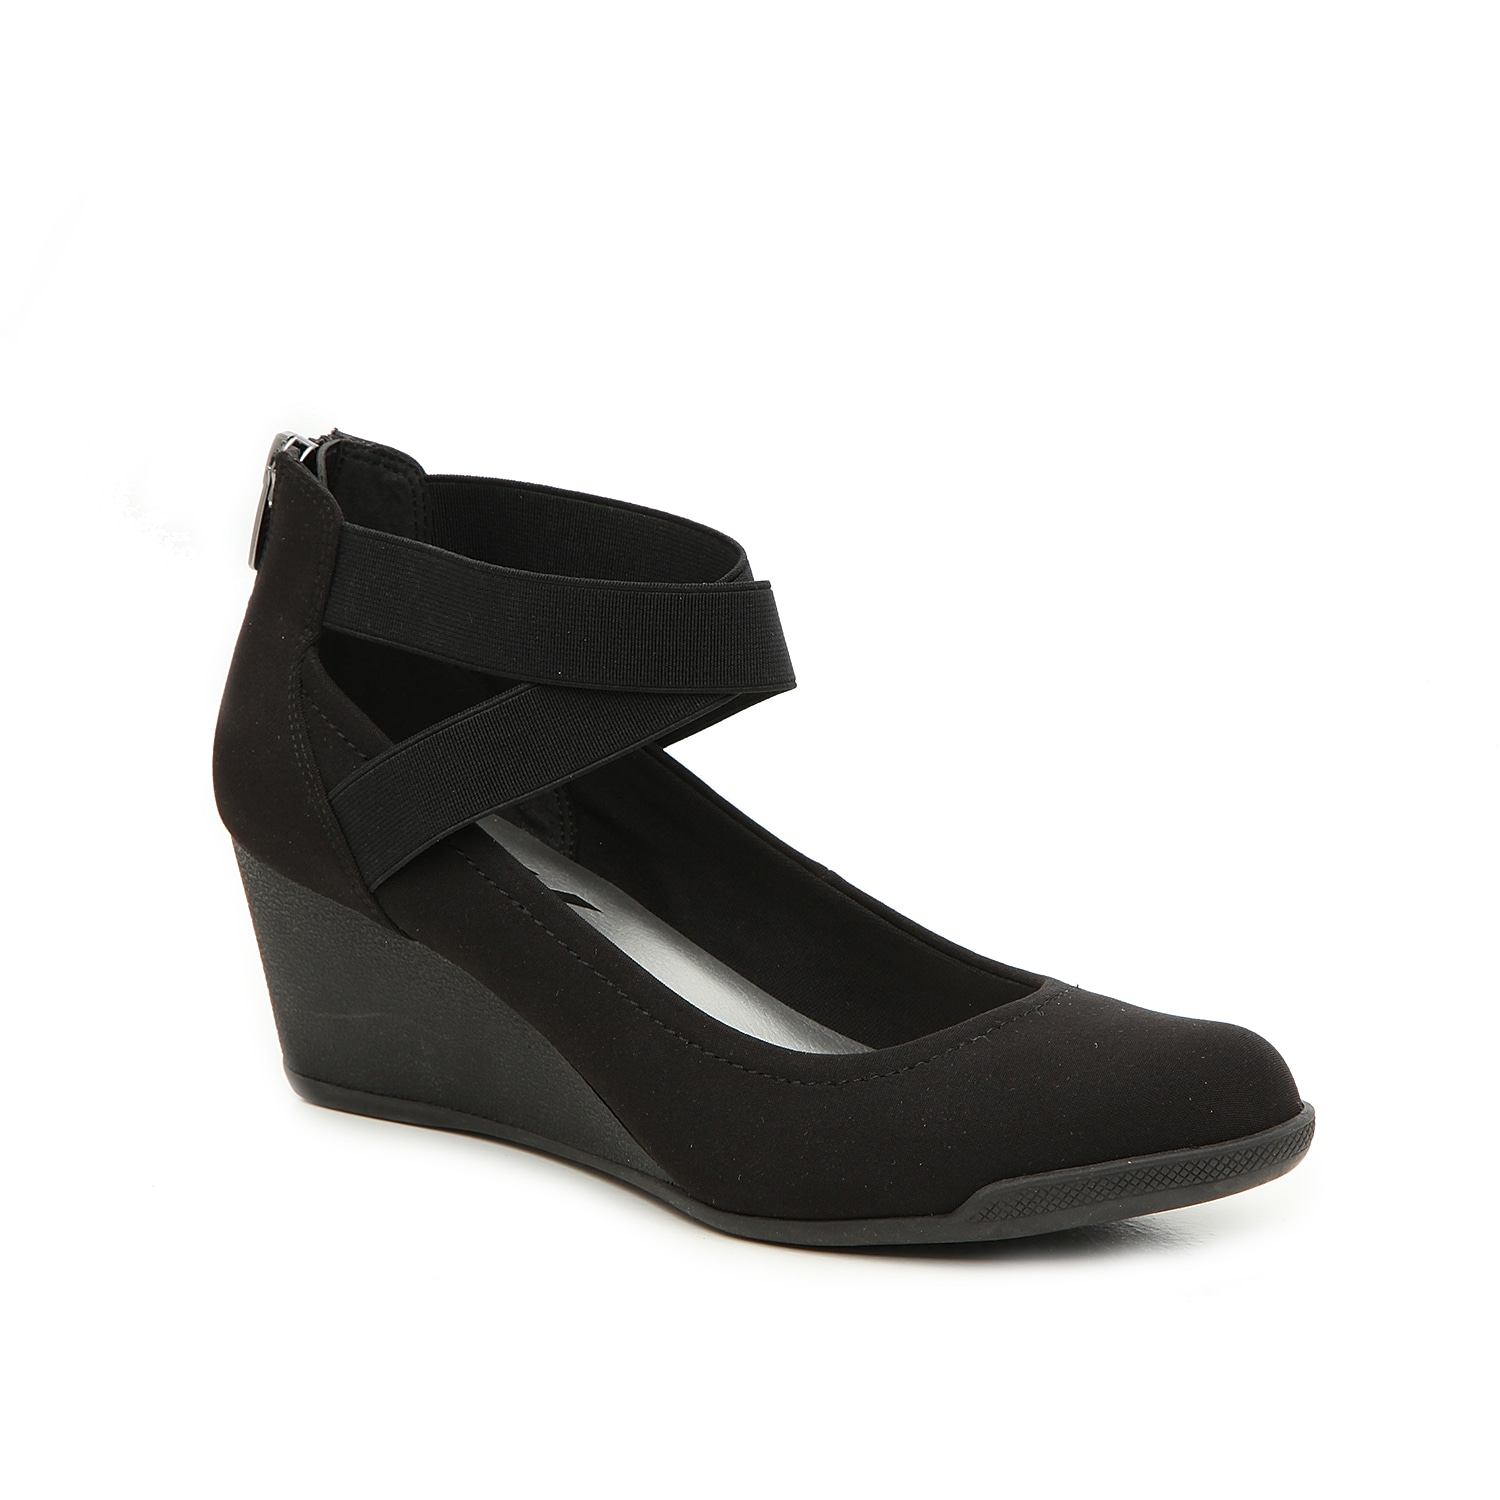 The Sport Taini pump from Anne Klein will bring plenty of standout style to your office attire. These wedges feature a plush footbed for optimal comfort and are finished with crisscross elastic straps at the ankle for extra allure.